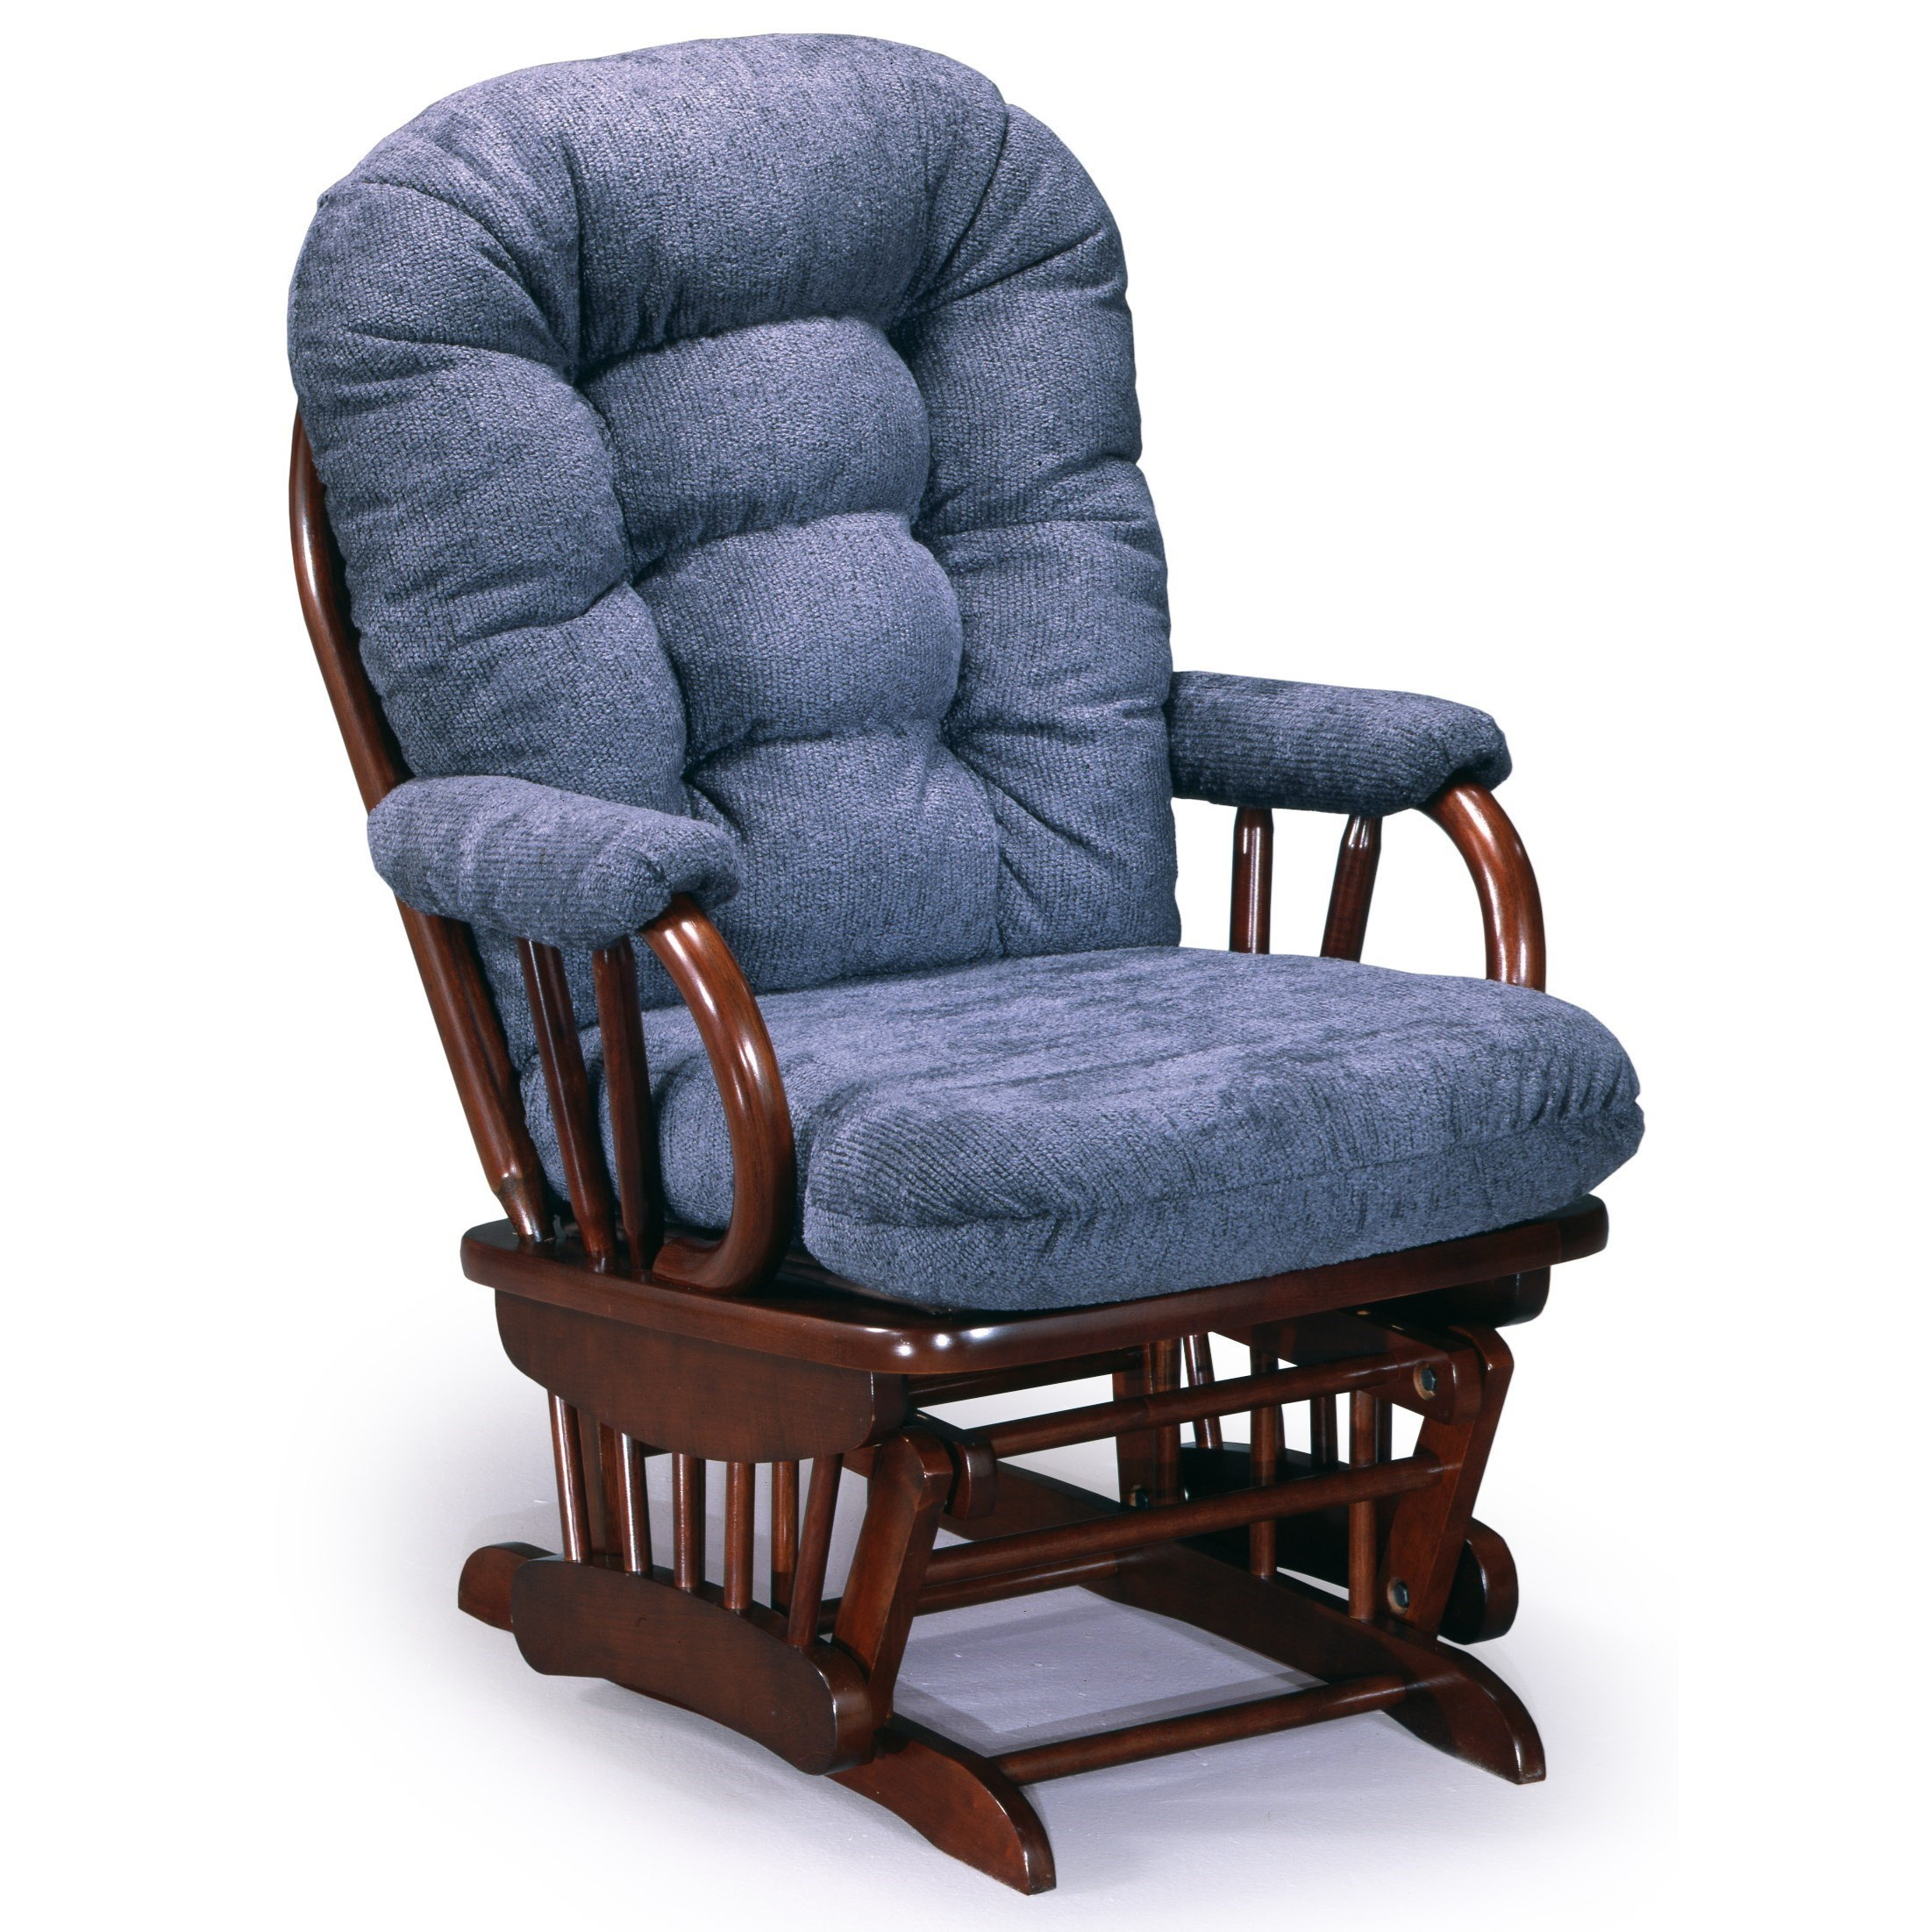 rocker glider chair wooden captain chairs for sale best home furnishings rockers sona wayside rockerssona